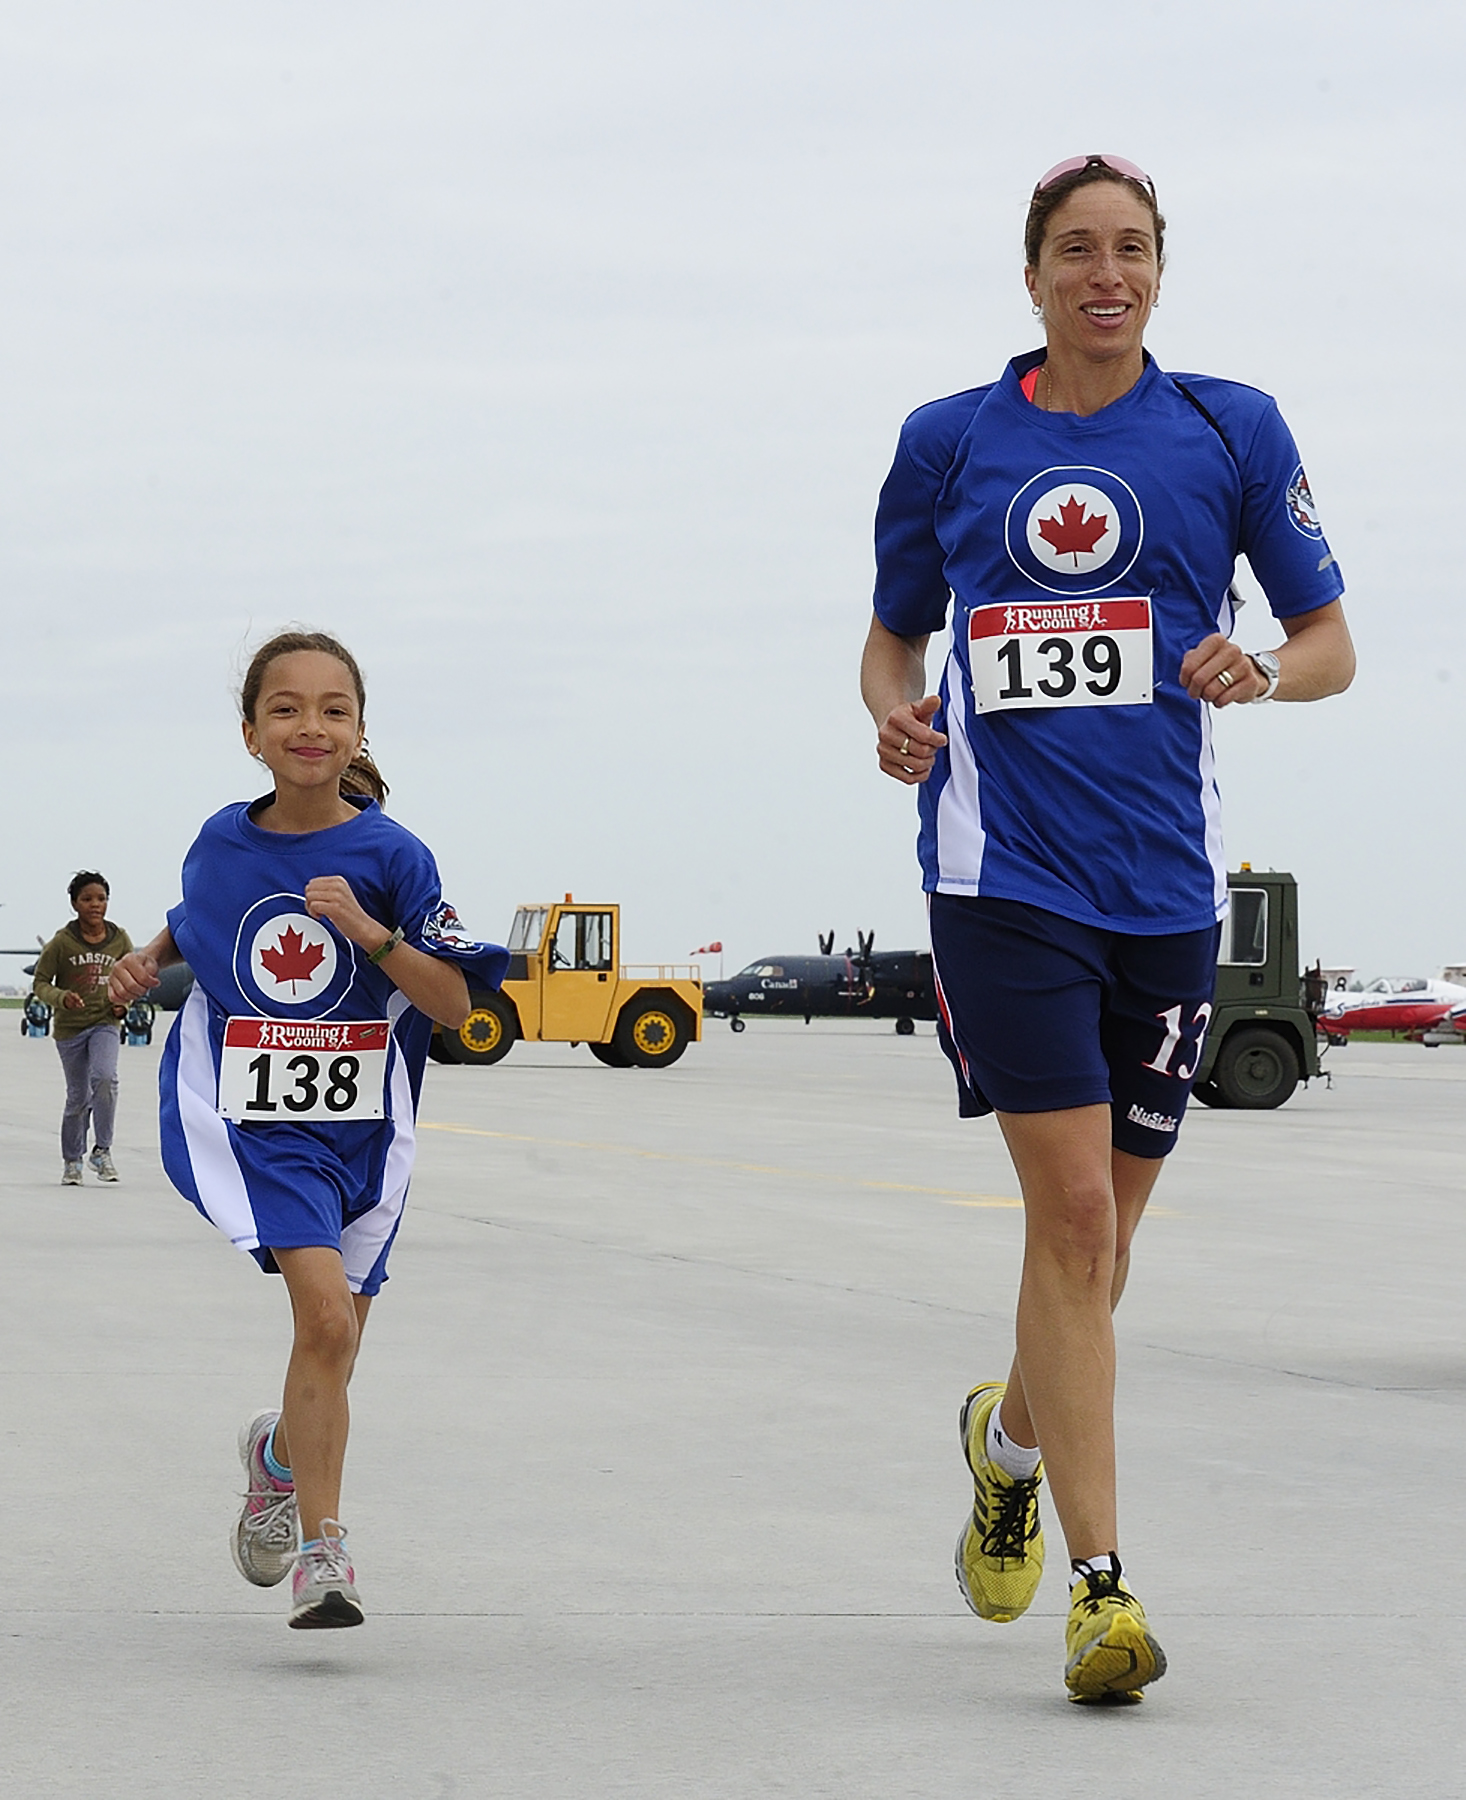 Saba Harding and her mom, Sharlene Harding, run along the flight line during the May 26, 2013, RCAF Run at 17 Wing Winnipeg, Manitoba. PHOTO: Master Corporal Colin Aitken, WG2013-0212-48